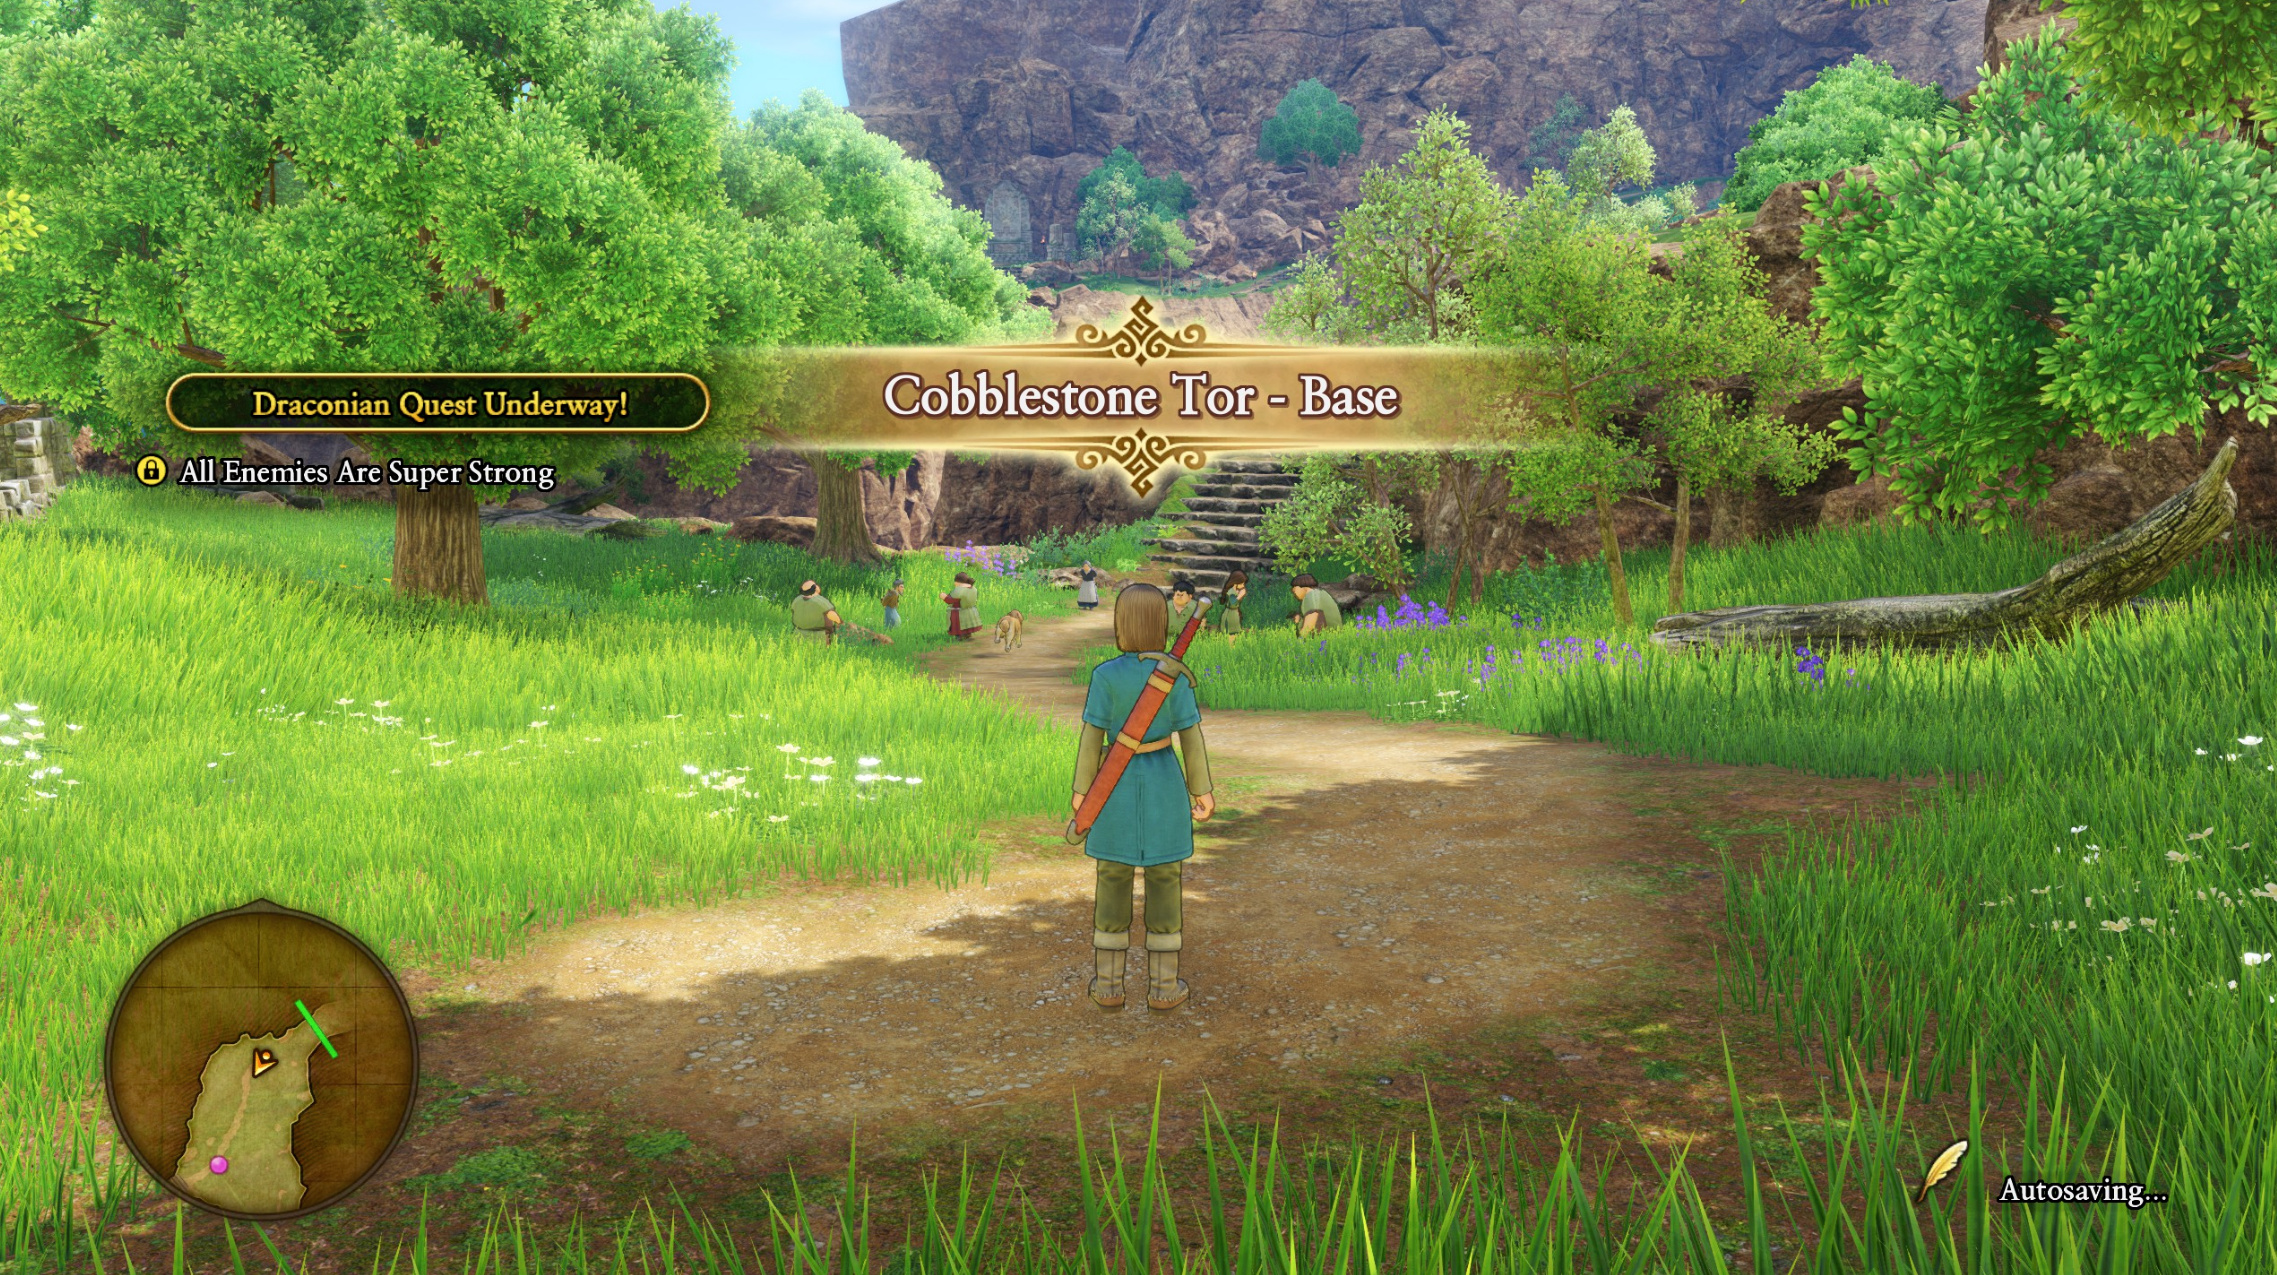 Dragon Quest XI - Echos of an Elusive Age - Games - Quarter To Three